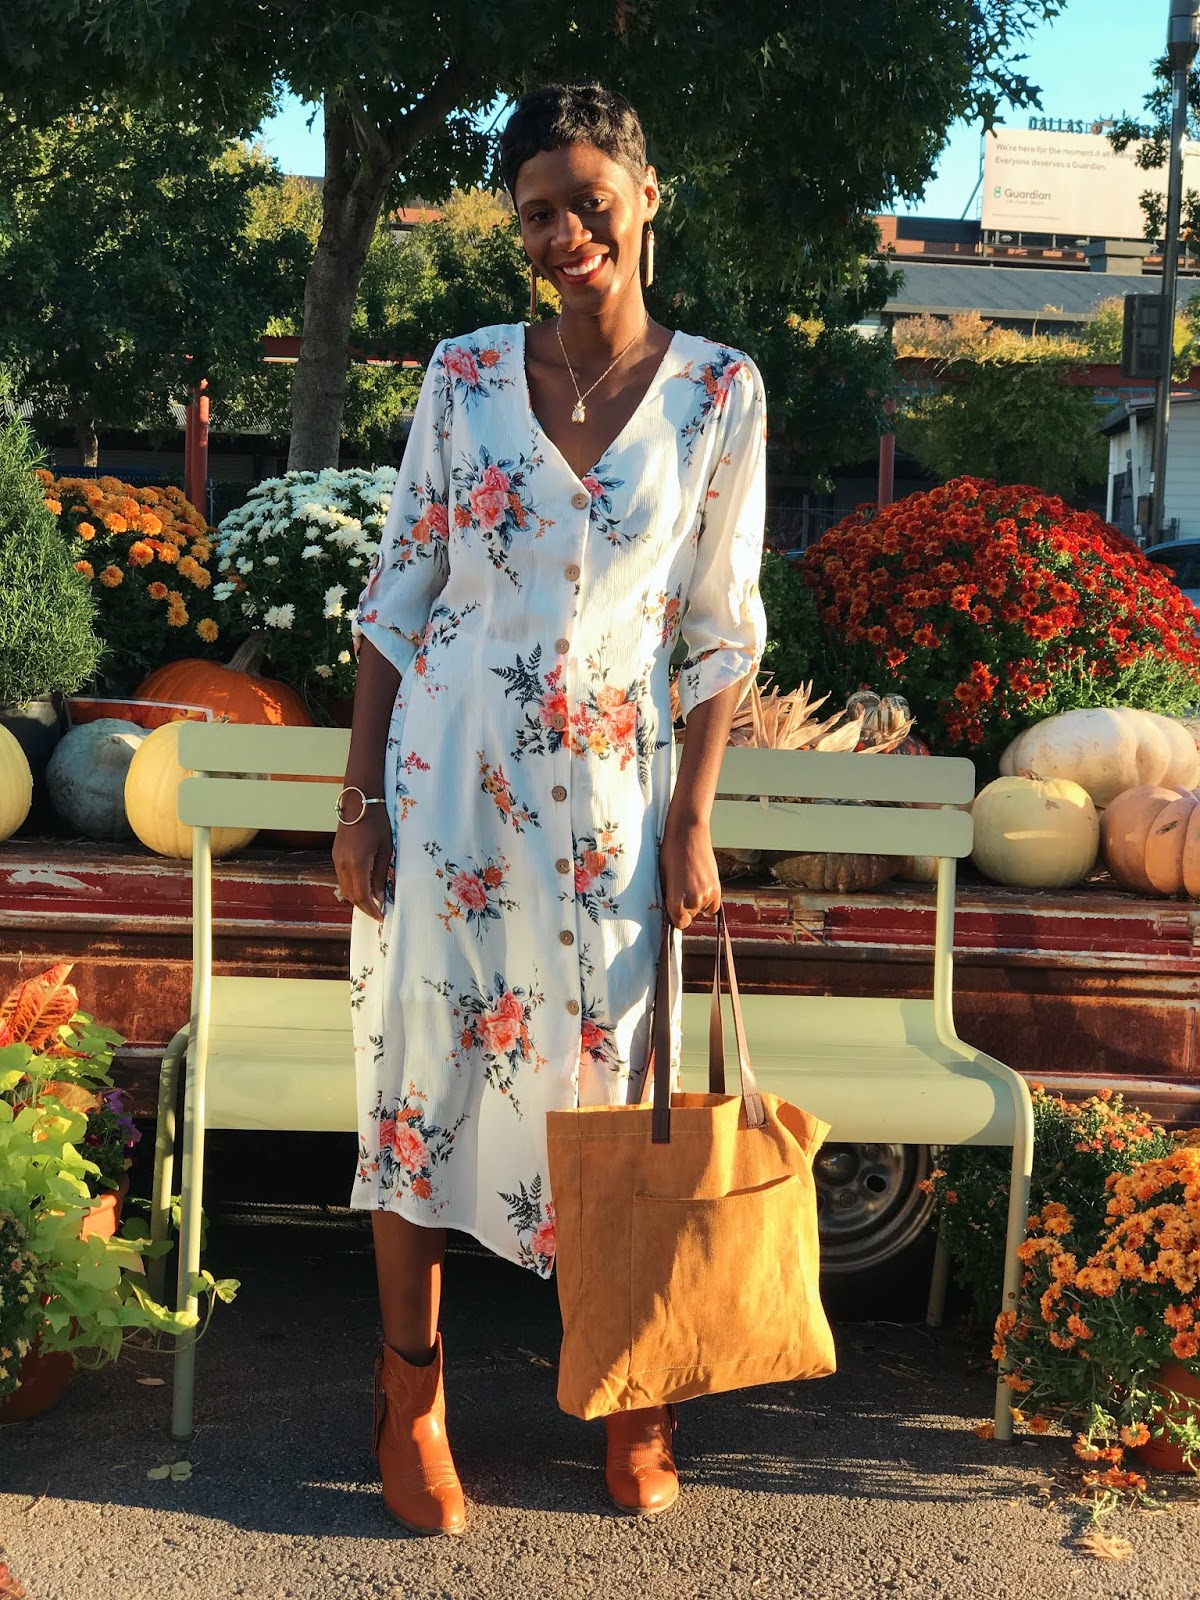 Restyle This With That: Rocking My White Floral Dress Two Simple Ways This Fall And Winter!